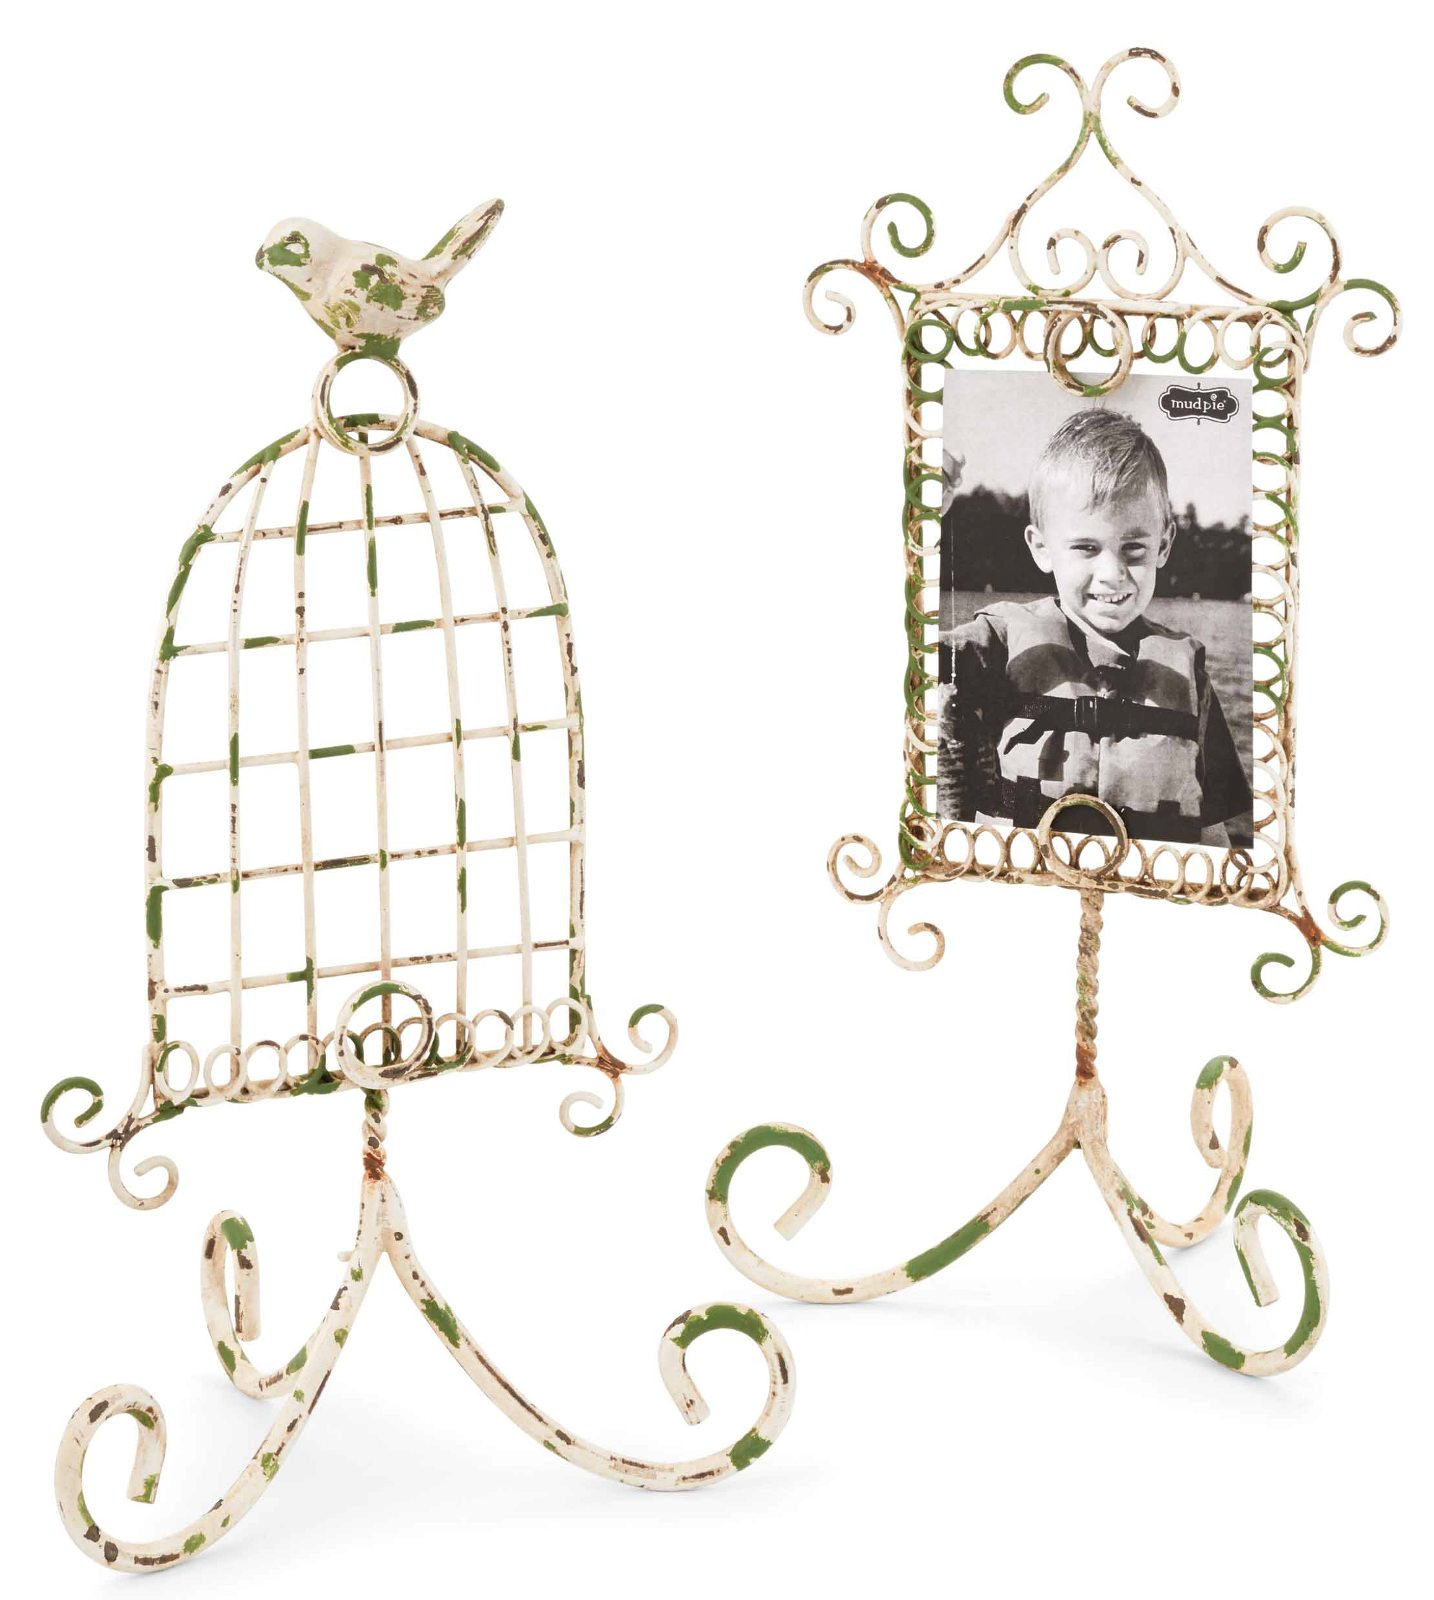 Distressed Wire 4X6 Picture Photo Frames Set of 2 Tabletop Desktop Mud Pie